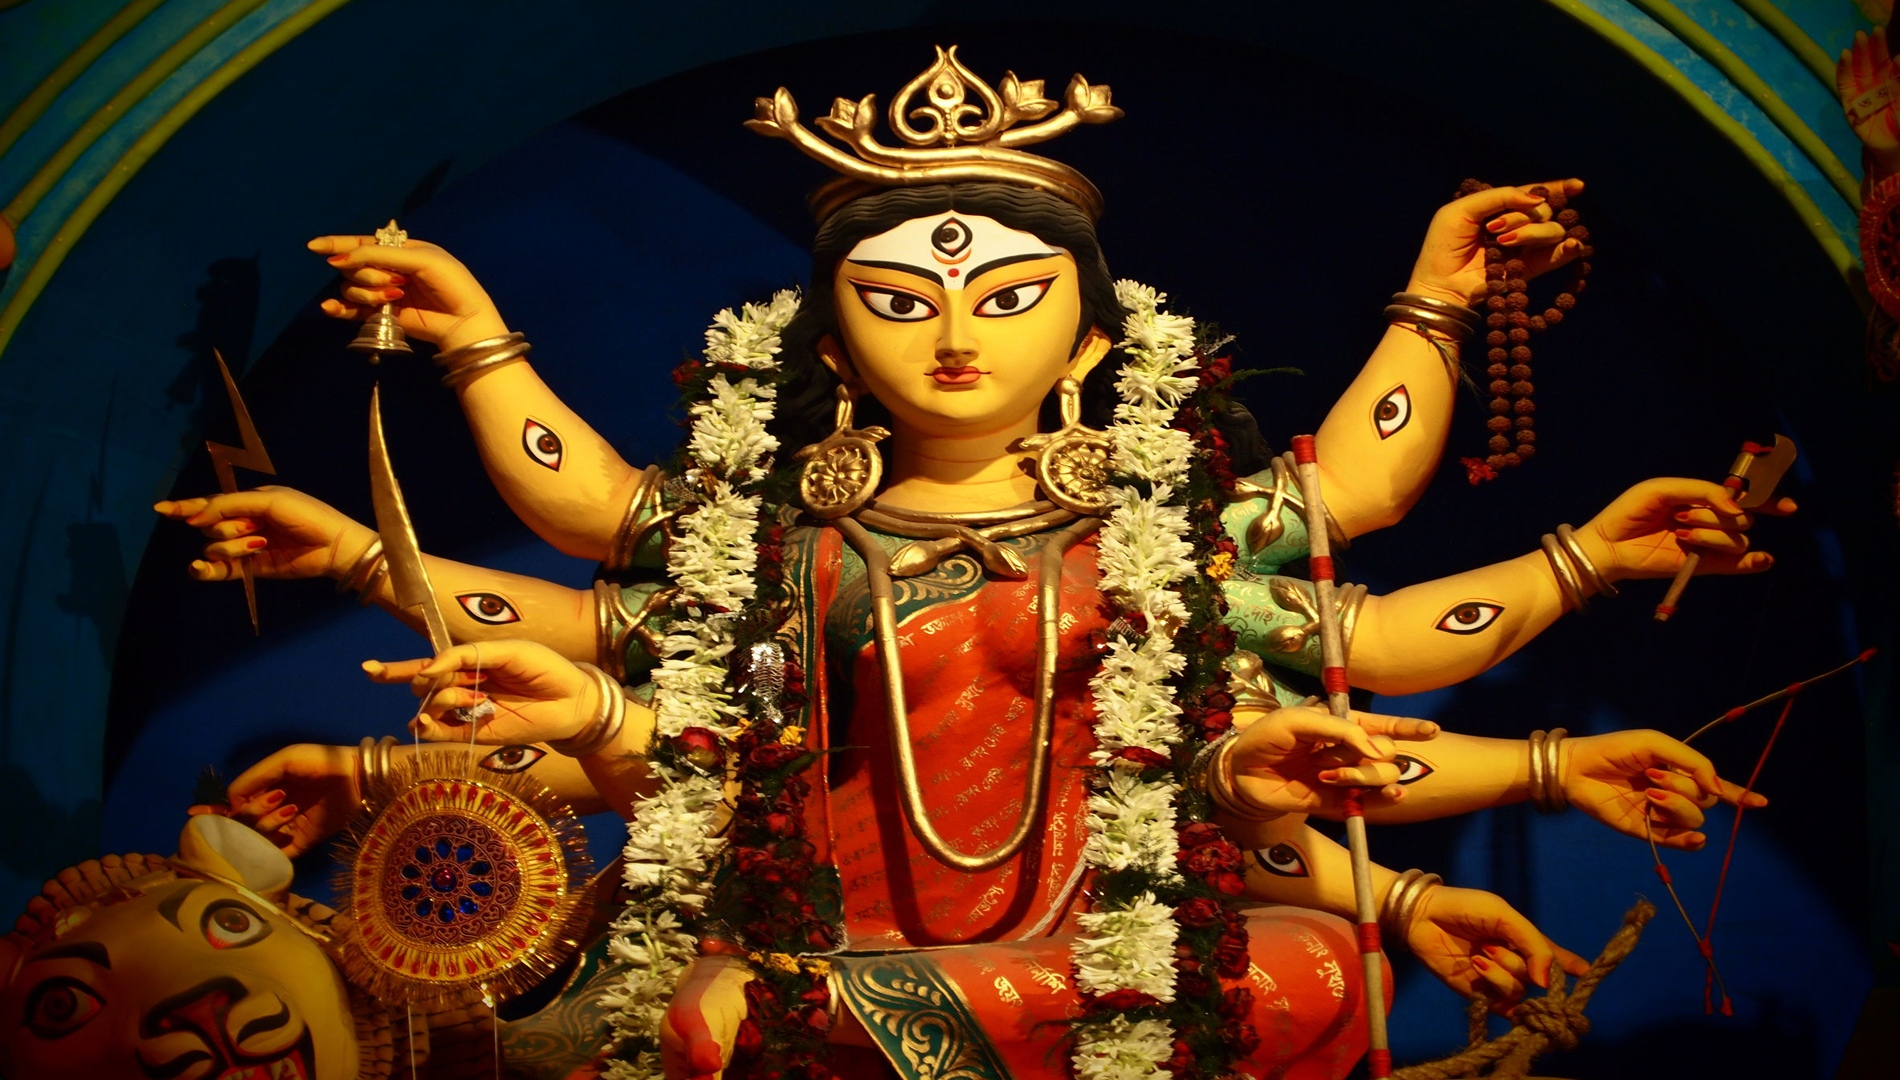 Deity Of Maa Durga